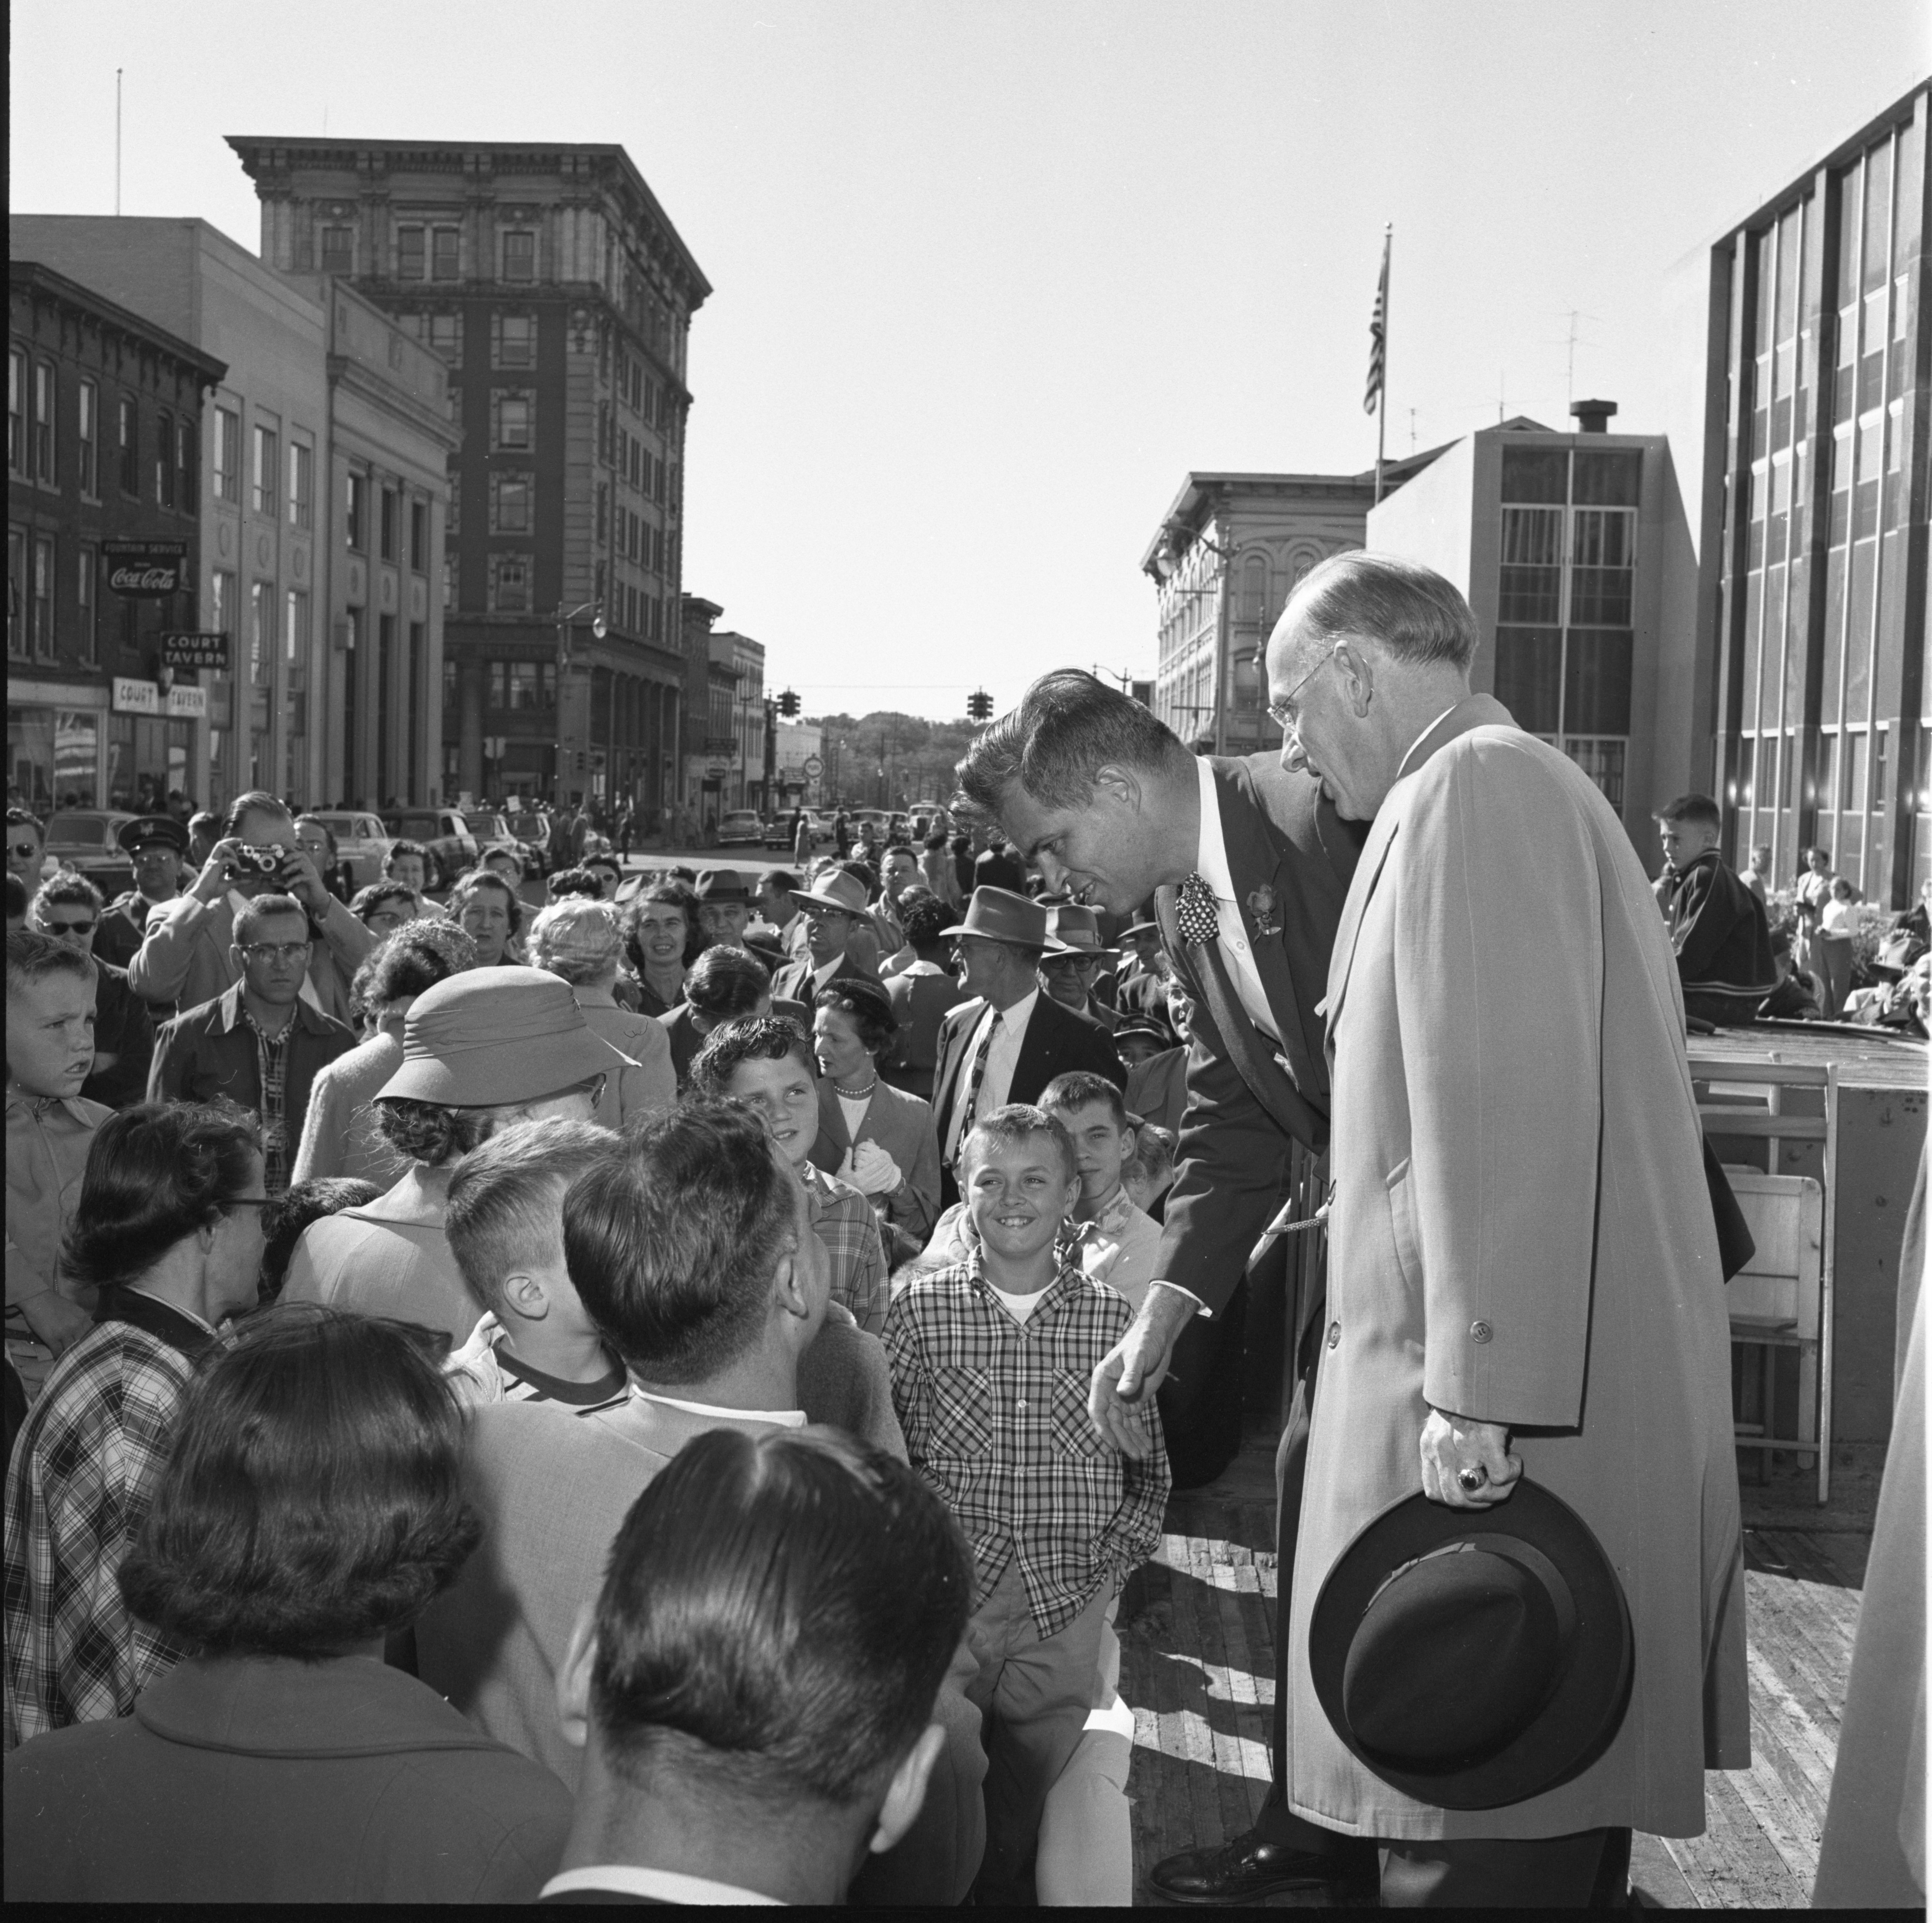 Gov. G. Mennen Williams Greets The Public At The Washtenaw County Building Dedication Ceremony, October 1956 image